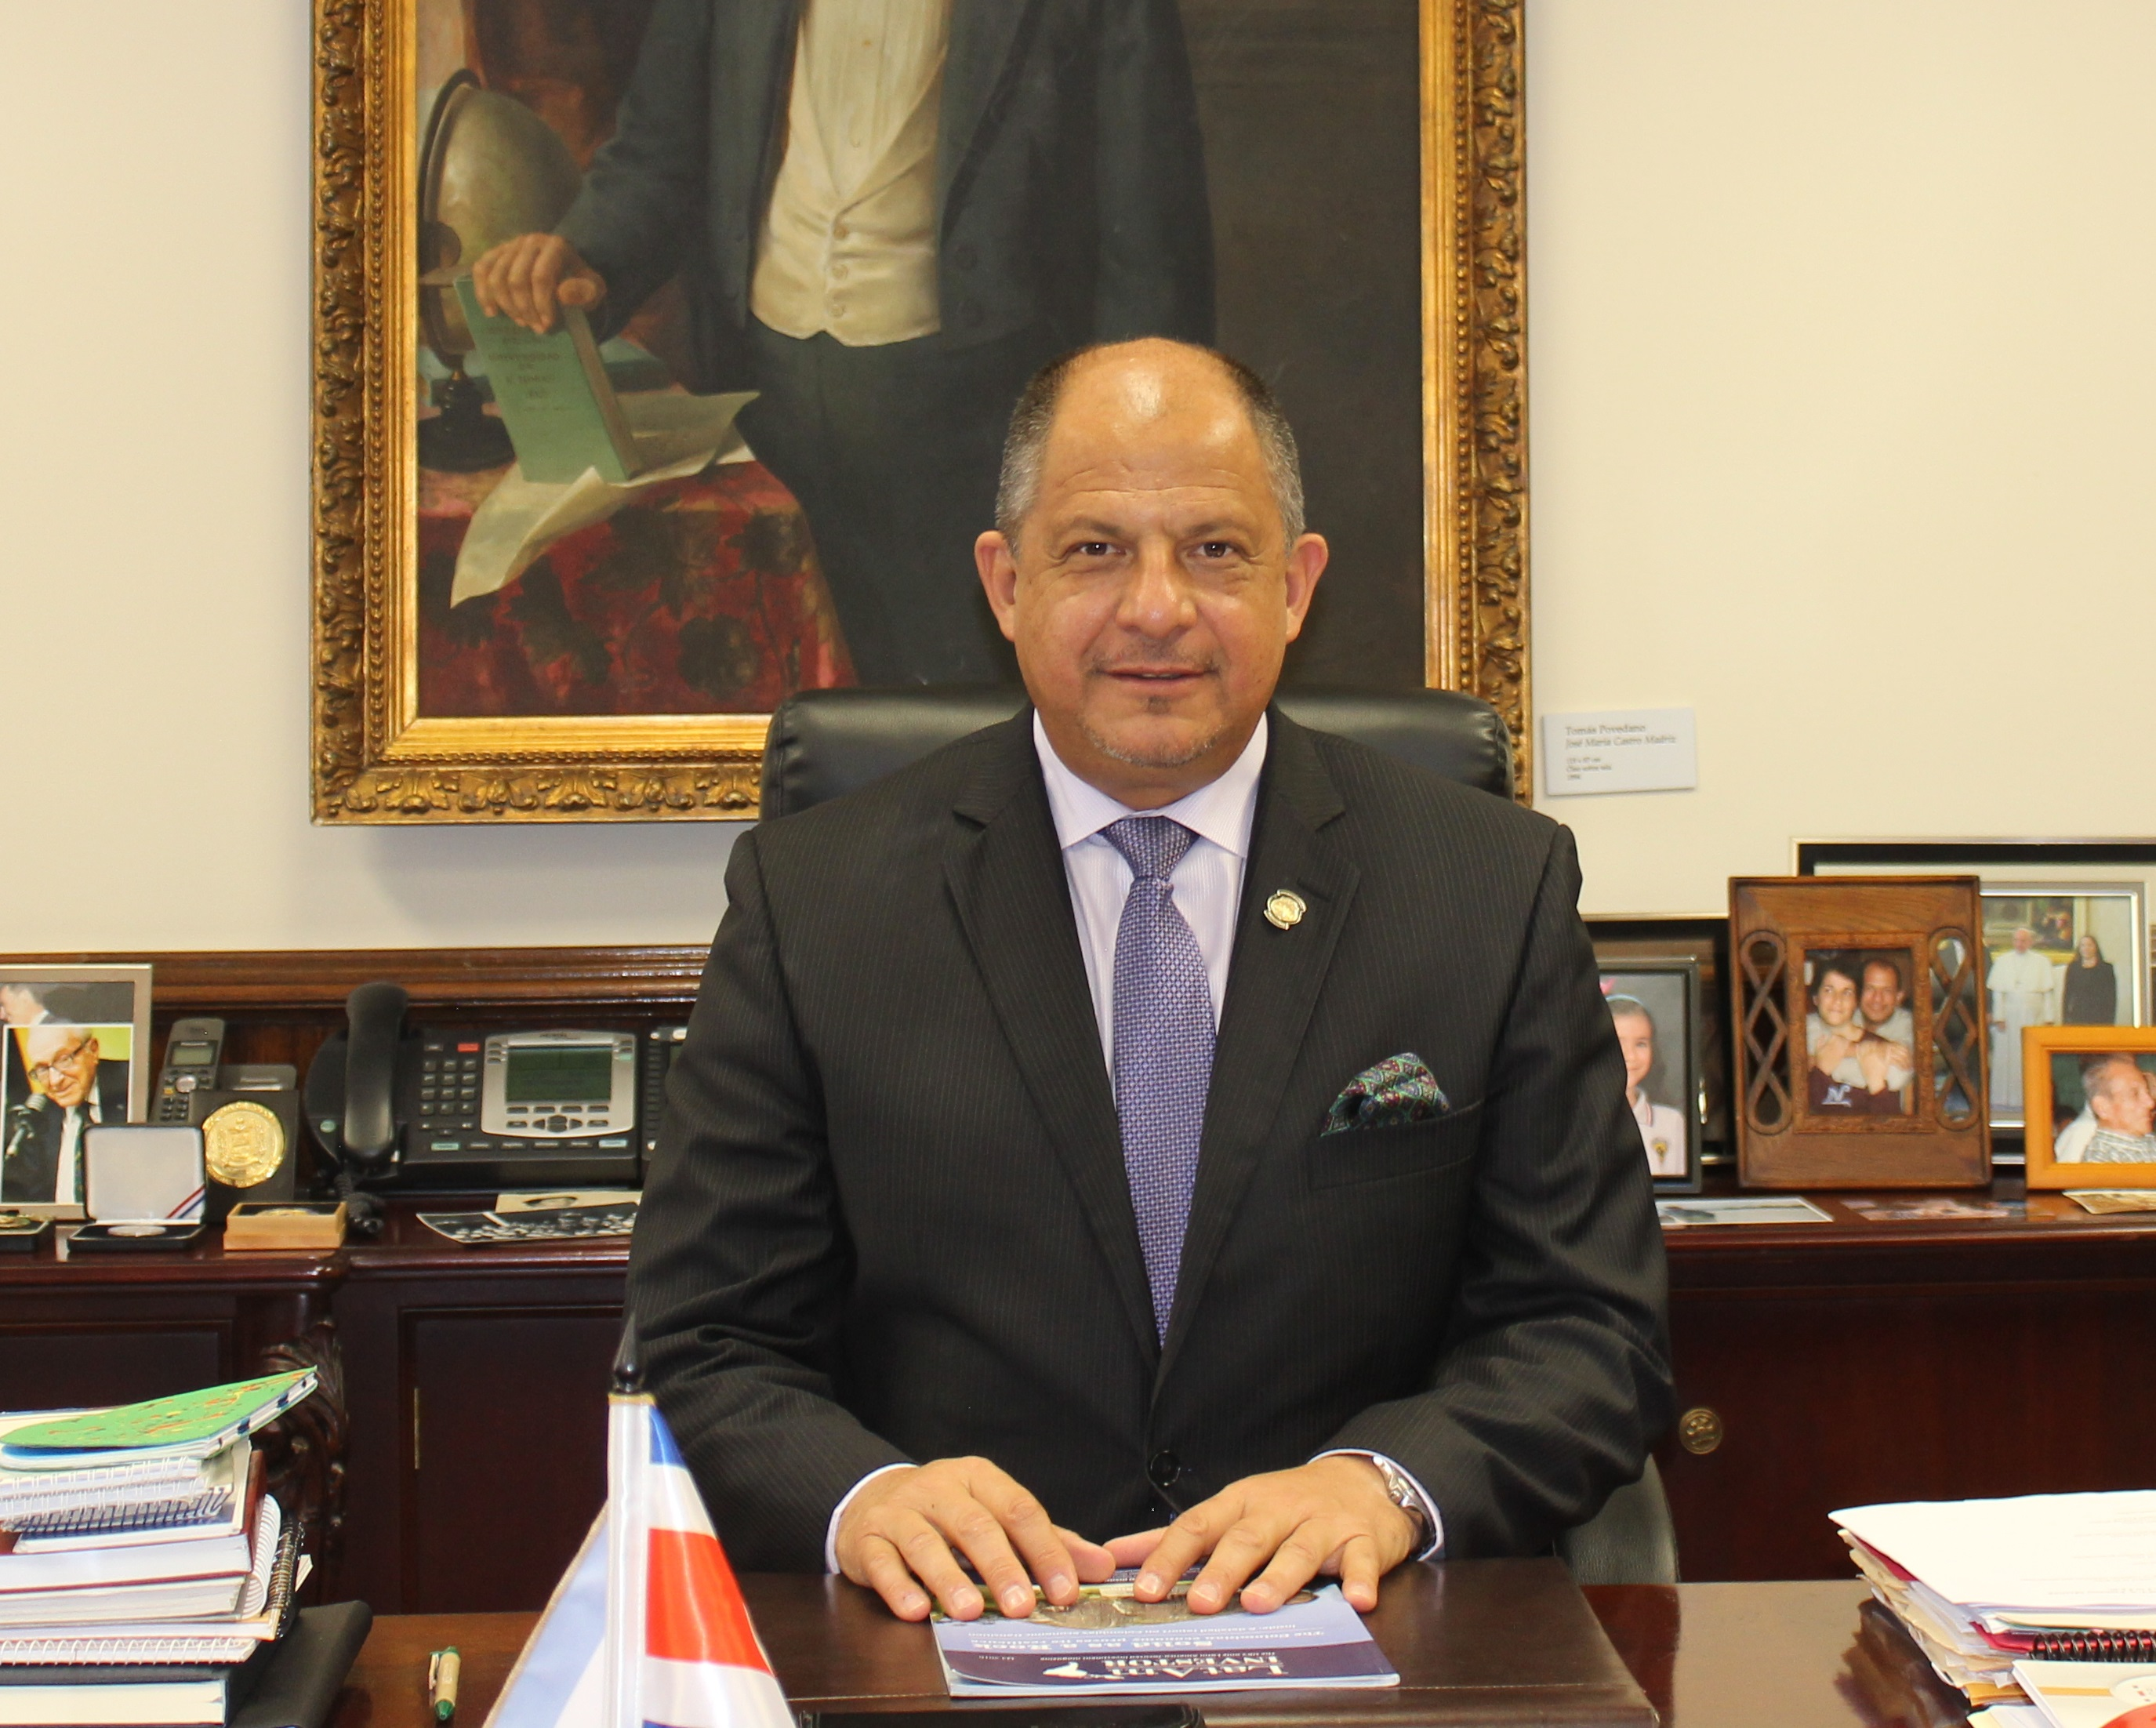 Interview with Luis Guillermo Solís, President of Costa Rica